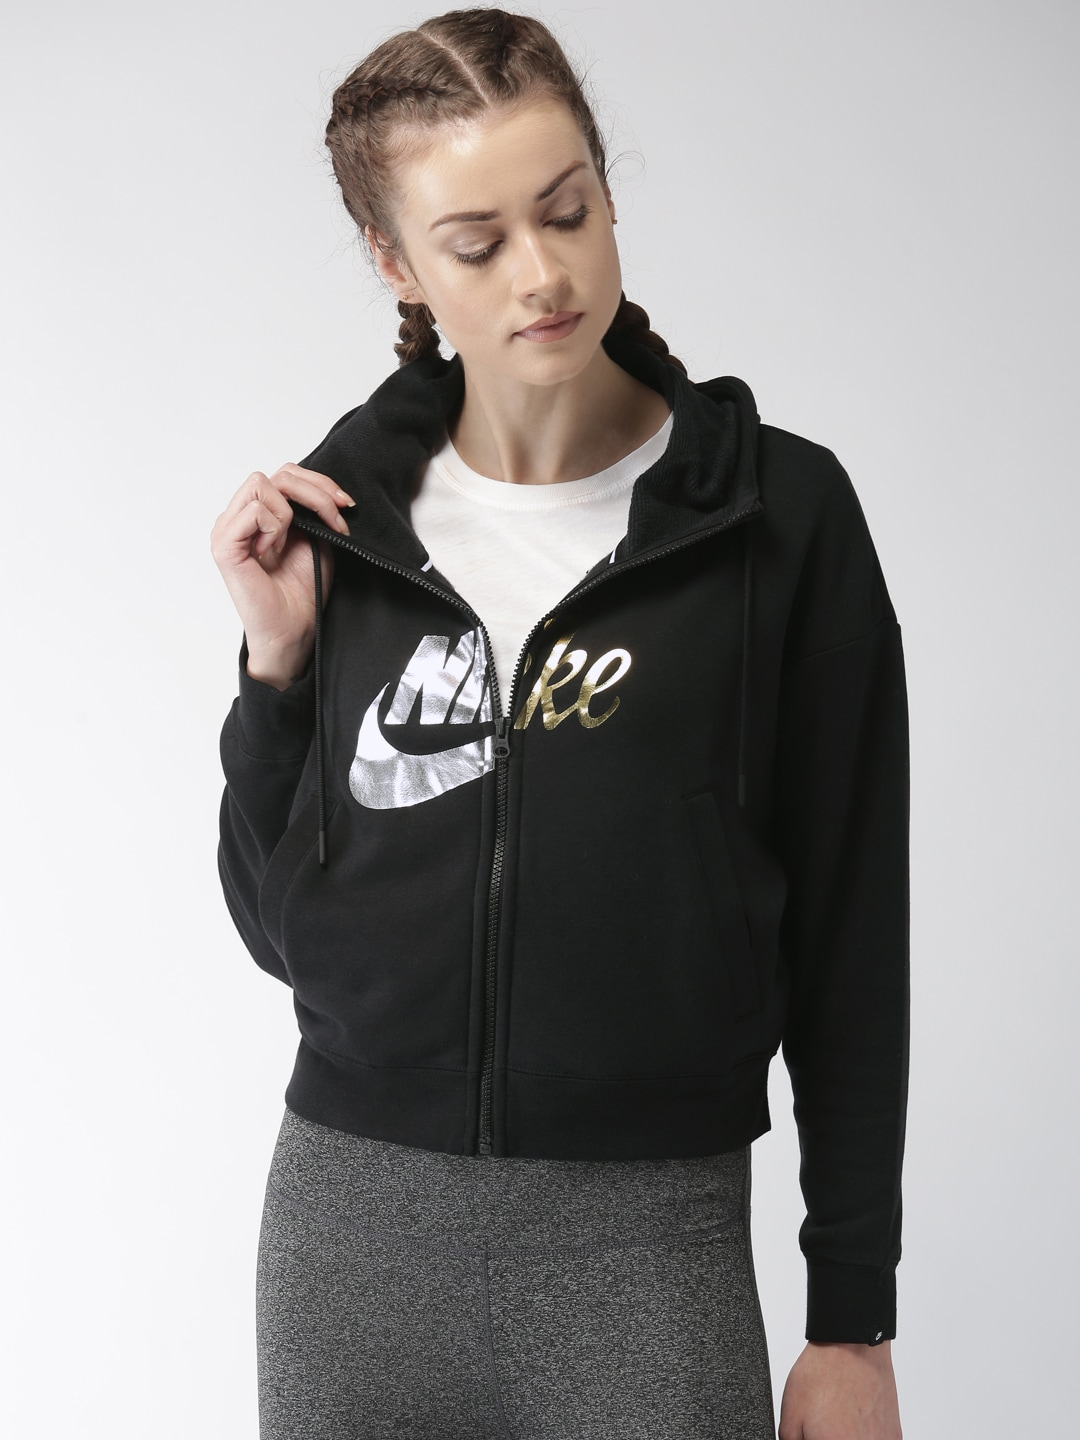 8c4c2be90b60 Nike Women Jackets - Buy Nike Women Jackets online in India